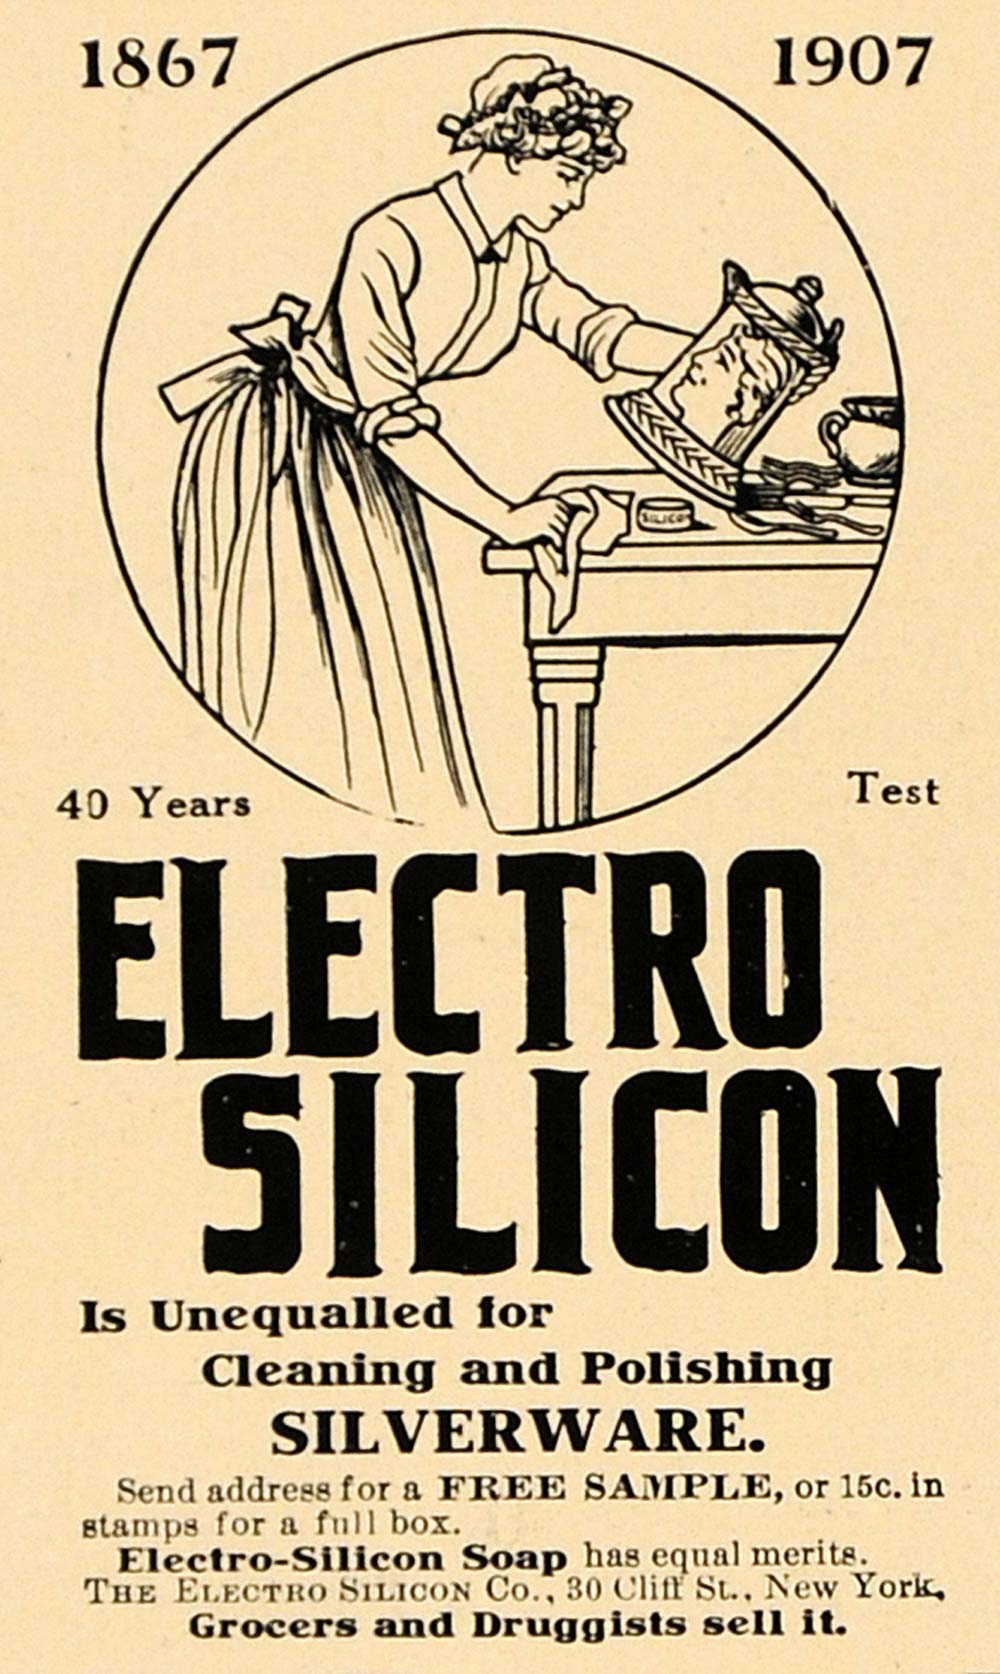 1907 Ad Electro Silicon Cleaning Polishing Silverware - ORIGINAL ADVERTISING CL9